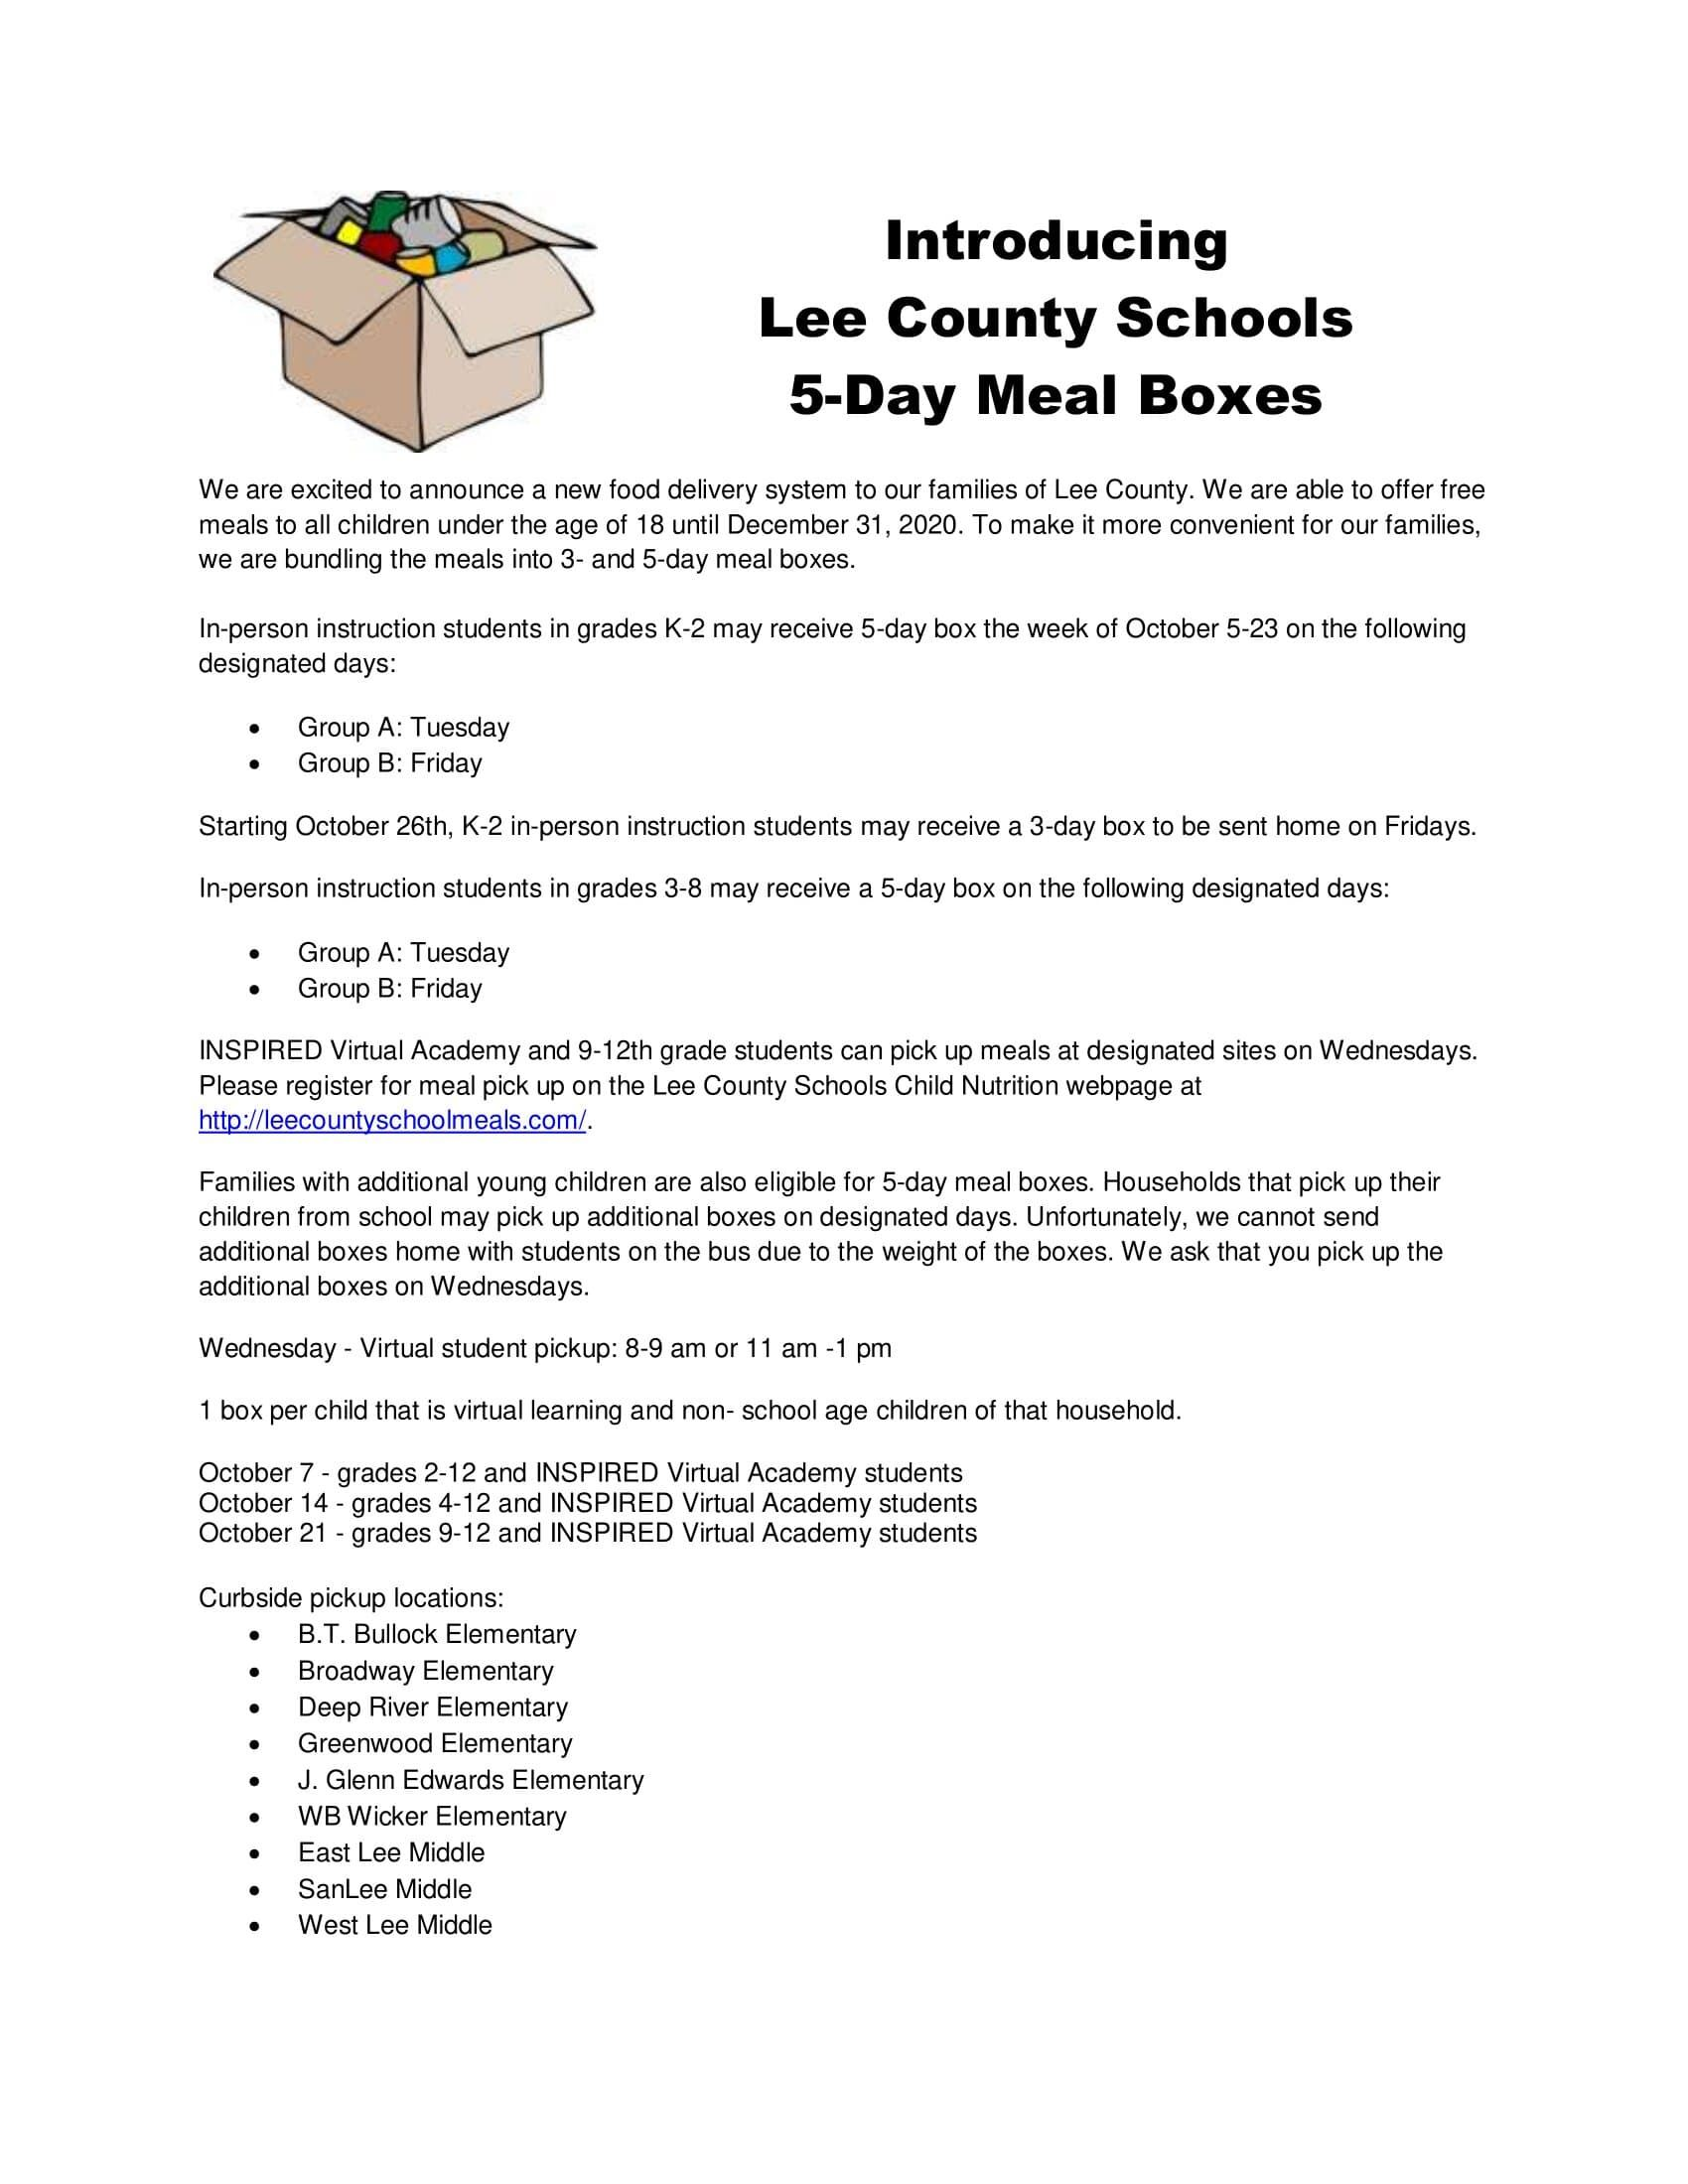 Lee County Schools now offering 5-day meal boxes